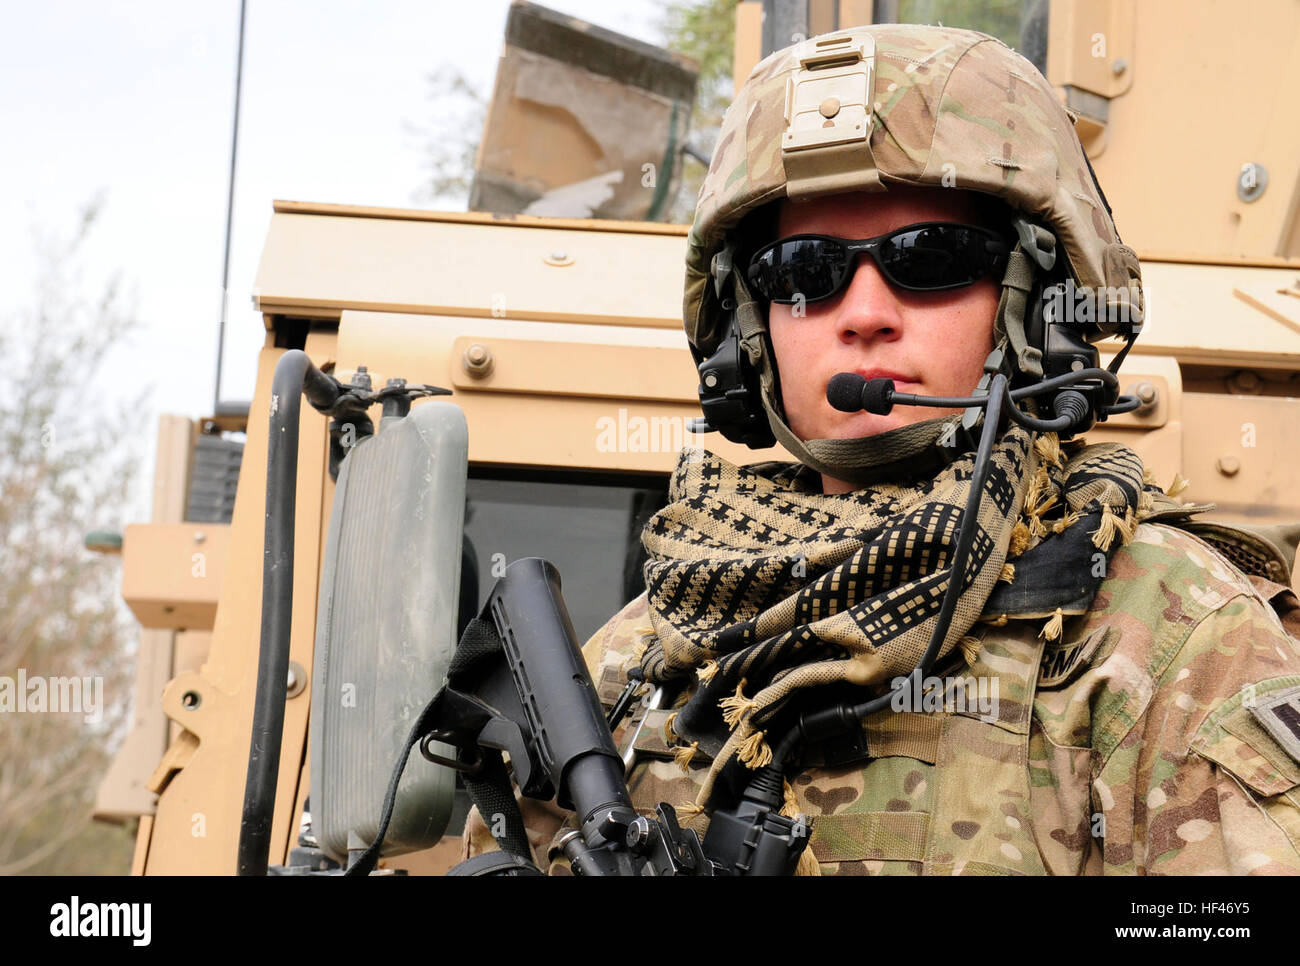 Task Force Spartan 3 soldier Army Spc. Rhesa Schubbe provides security for her team while Afghan National Police - Stock Image